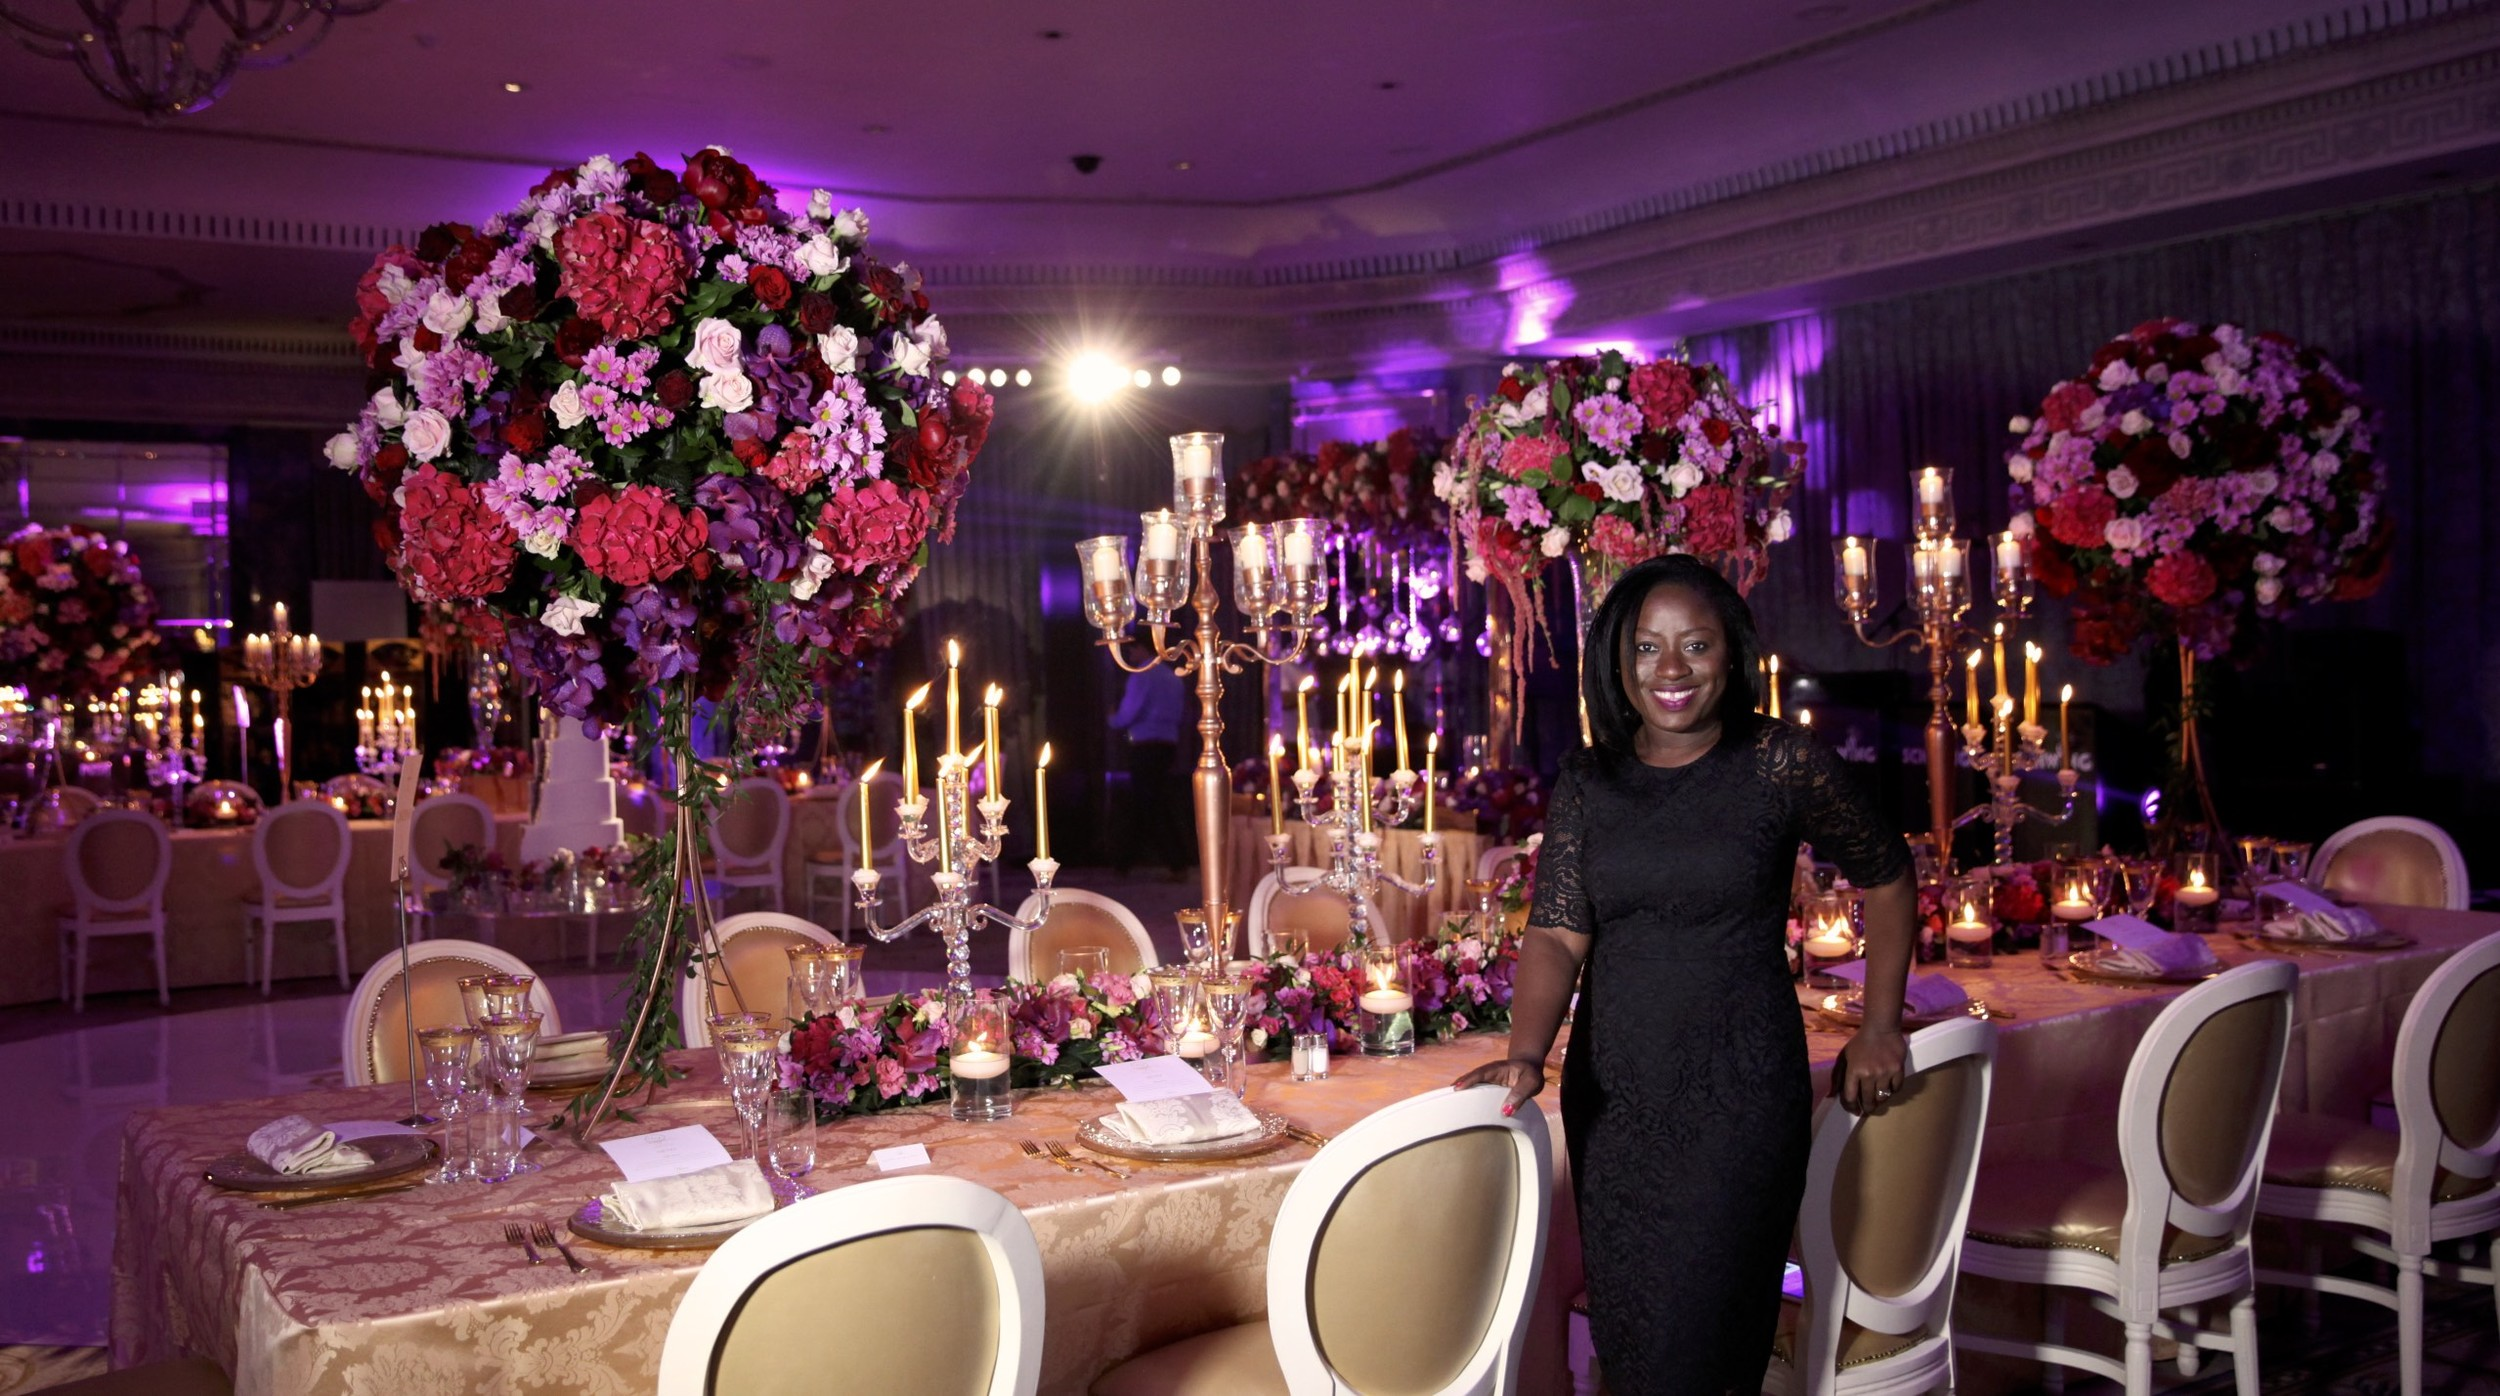 Wedding Planning Ideas: 10 Best Small Business Ideas In Kenya With Under 20k Capital